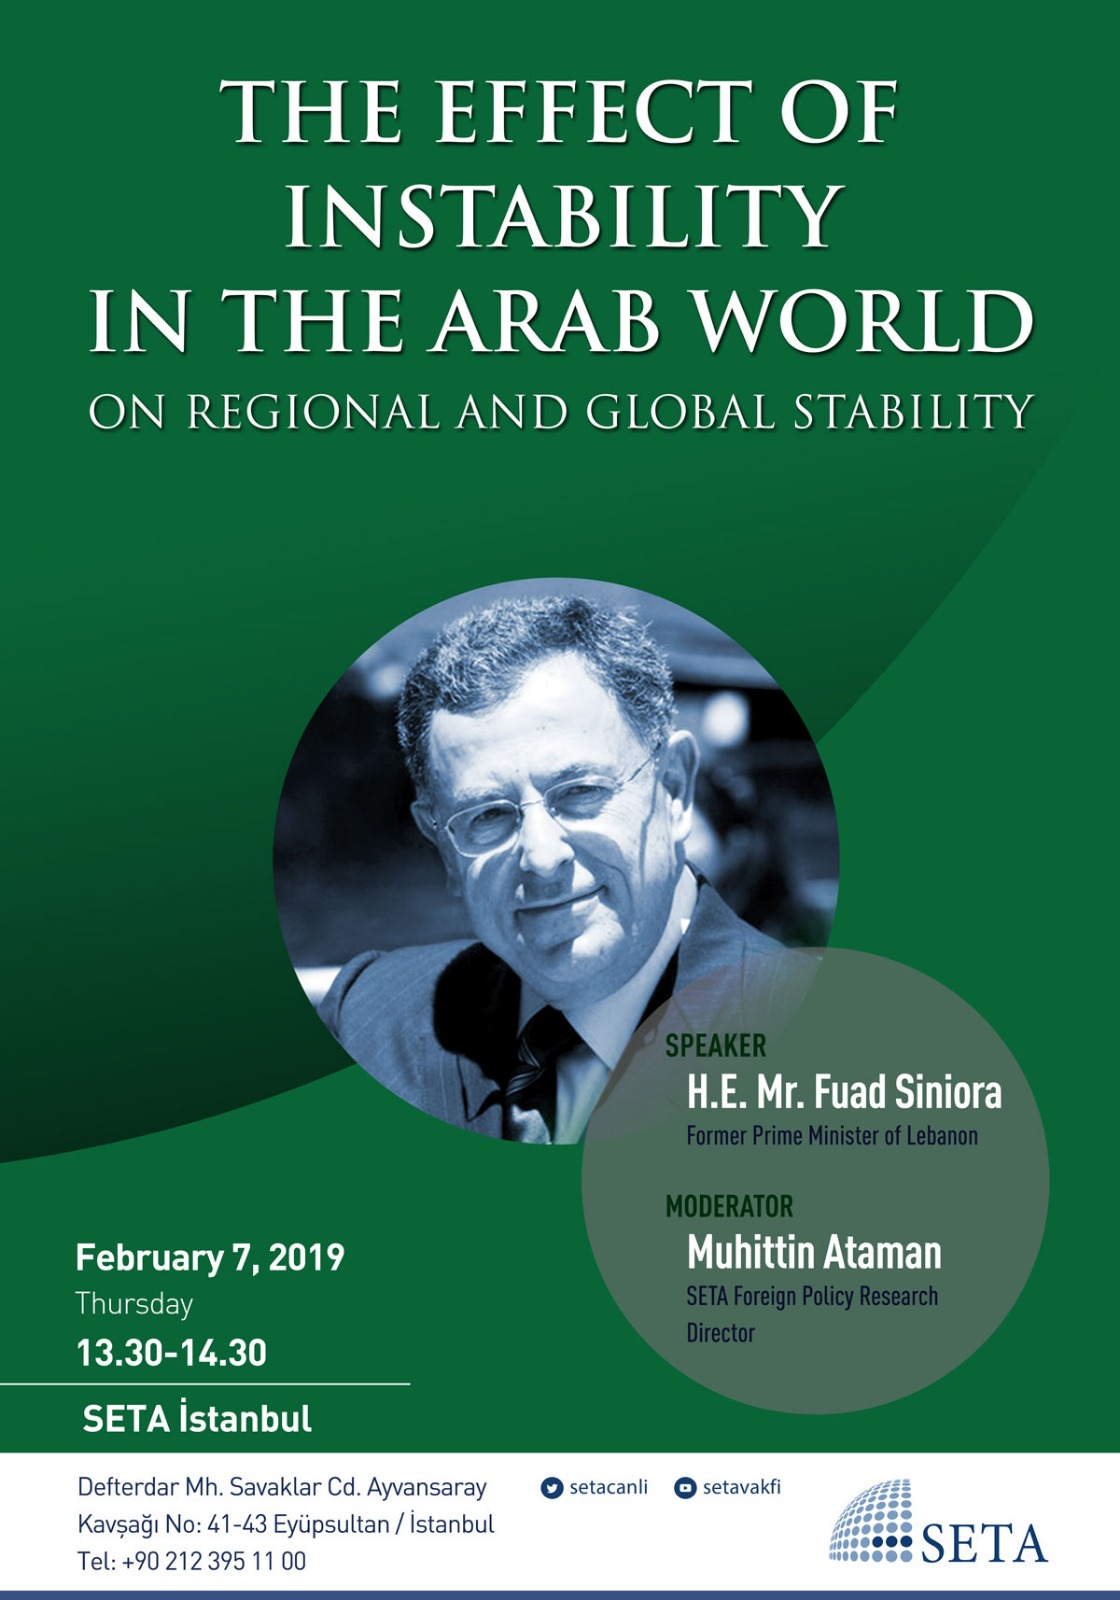 Panel: The Effect of Instability in the Arab World on Regional and Global Stability